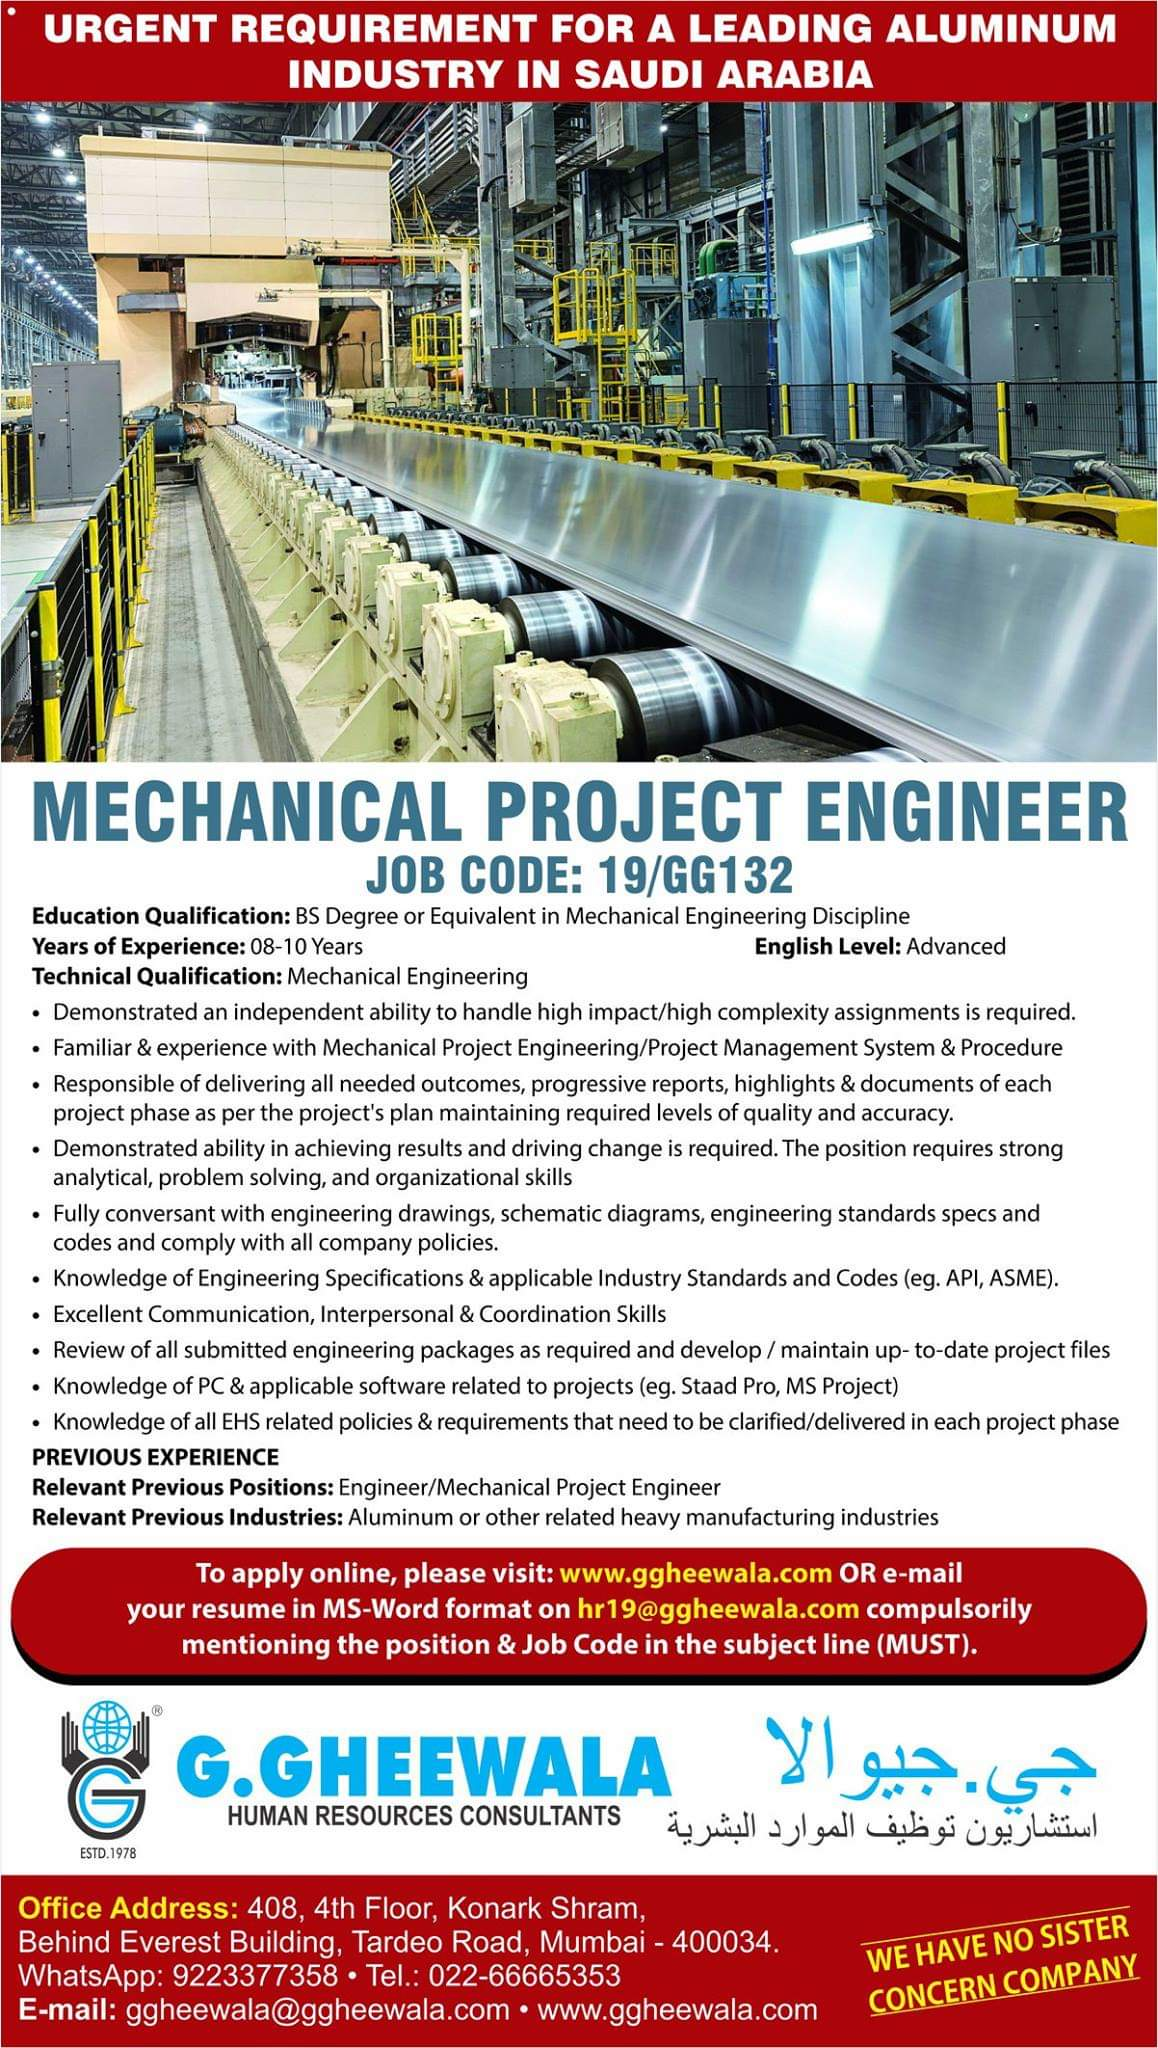 MECHANICAL PROJECT ENGINEER URGENT REQUIREMENT FOR A LEADING